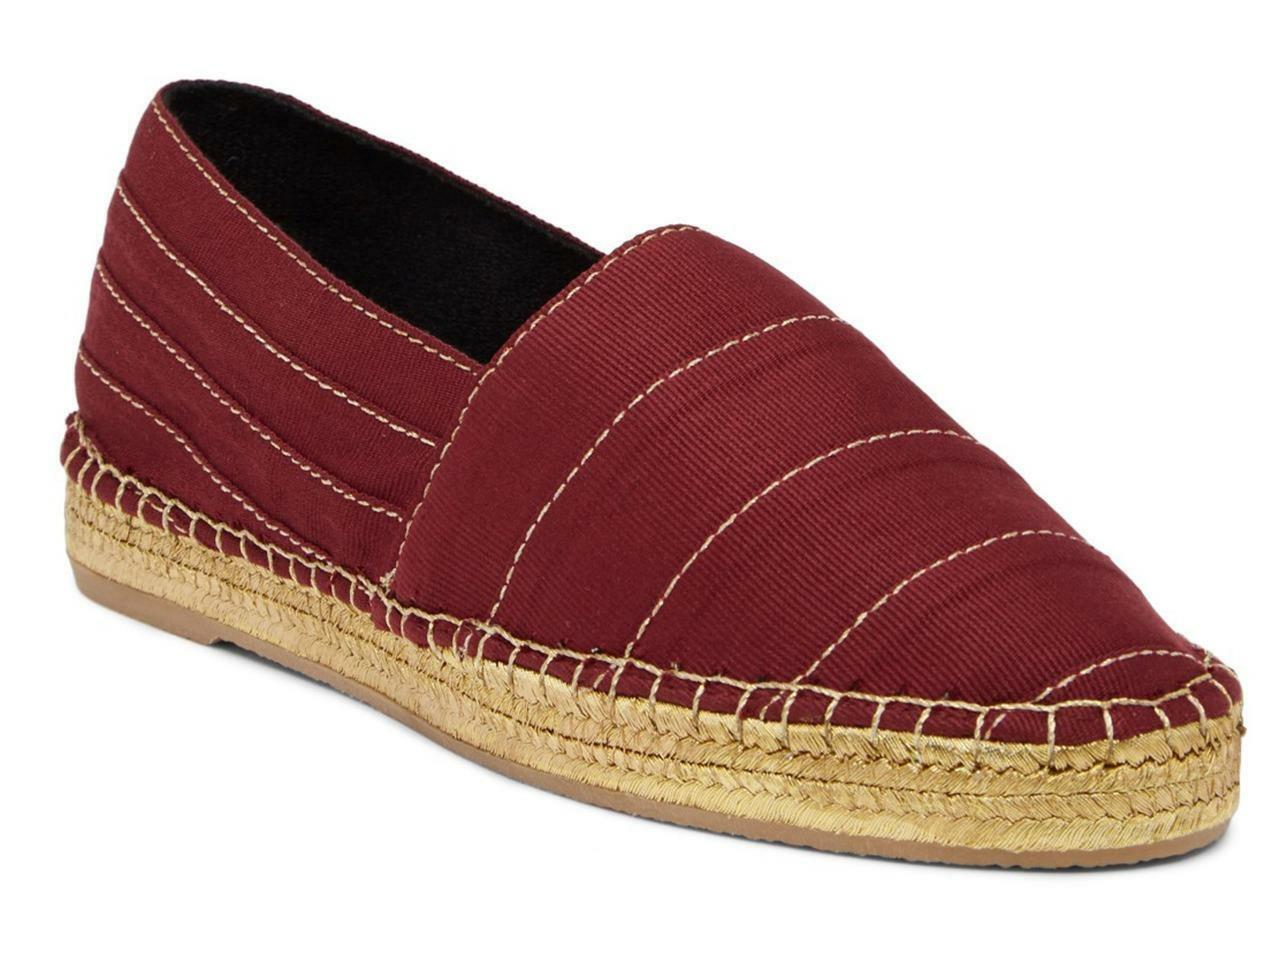 New in Box -  250 Marc Jacobs Jacobs Jacobs Sienna Bordeaux Espadrille Flat Größe 8 (38) 797611